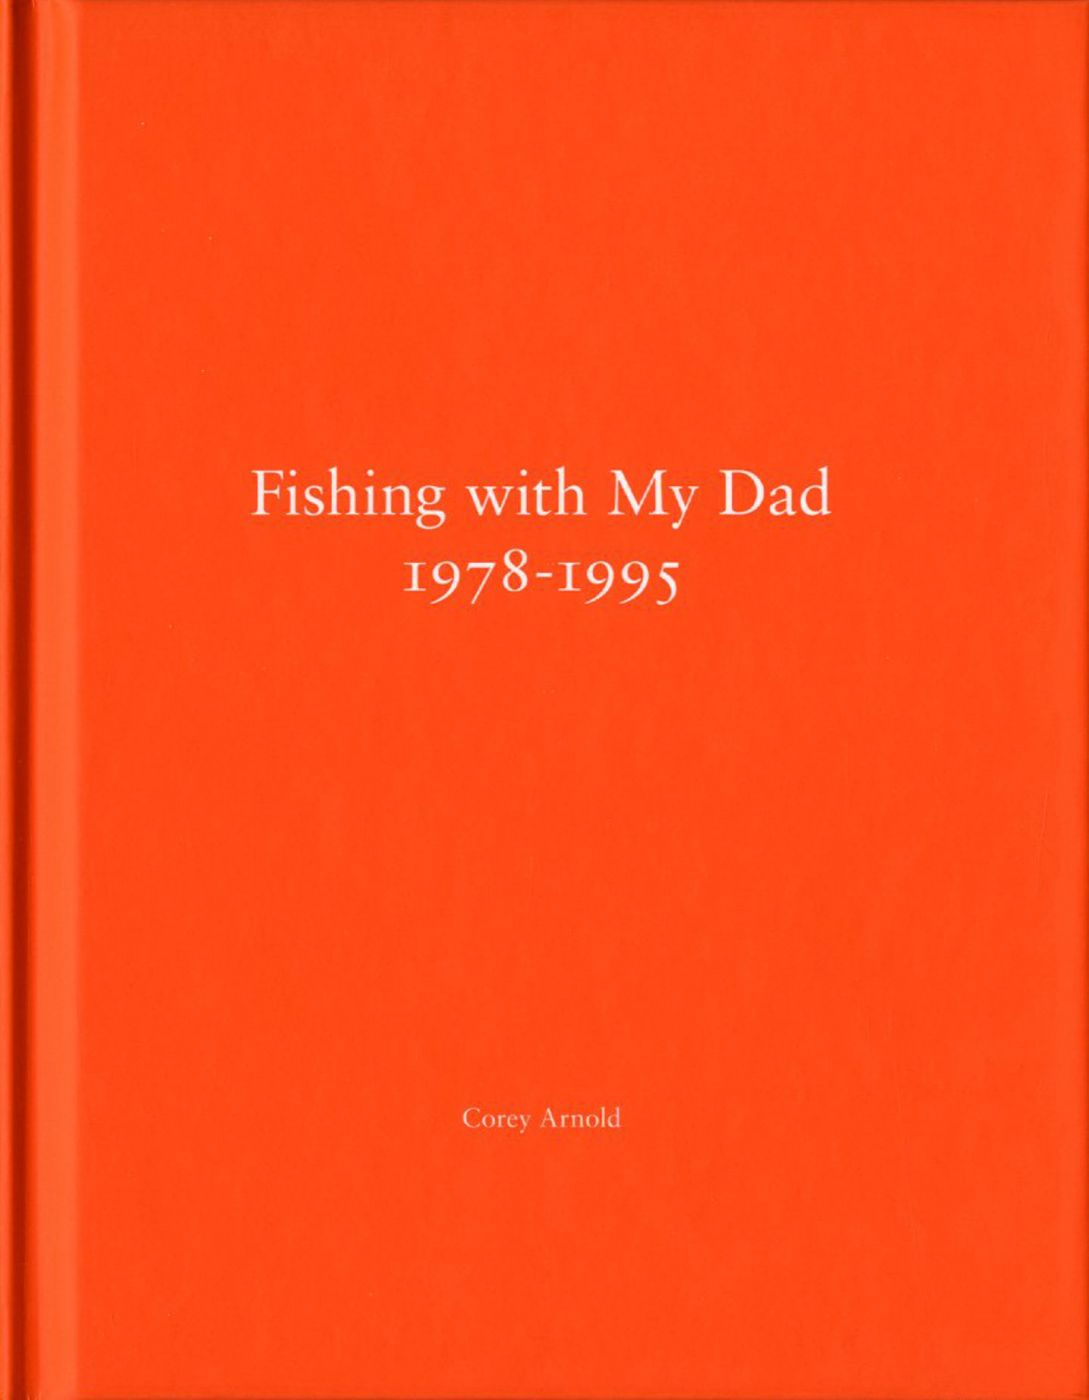 Corey Arnold and Chris Arnold: Fishing with My Dad 1978-1995 (One Picture Book #69), Limited Edition